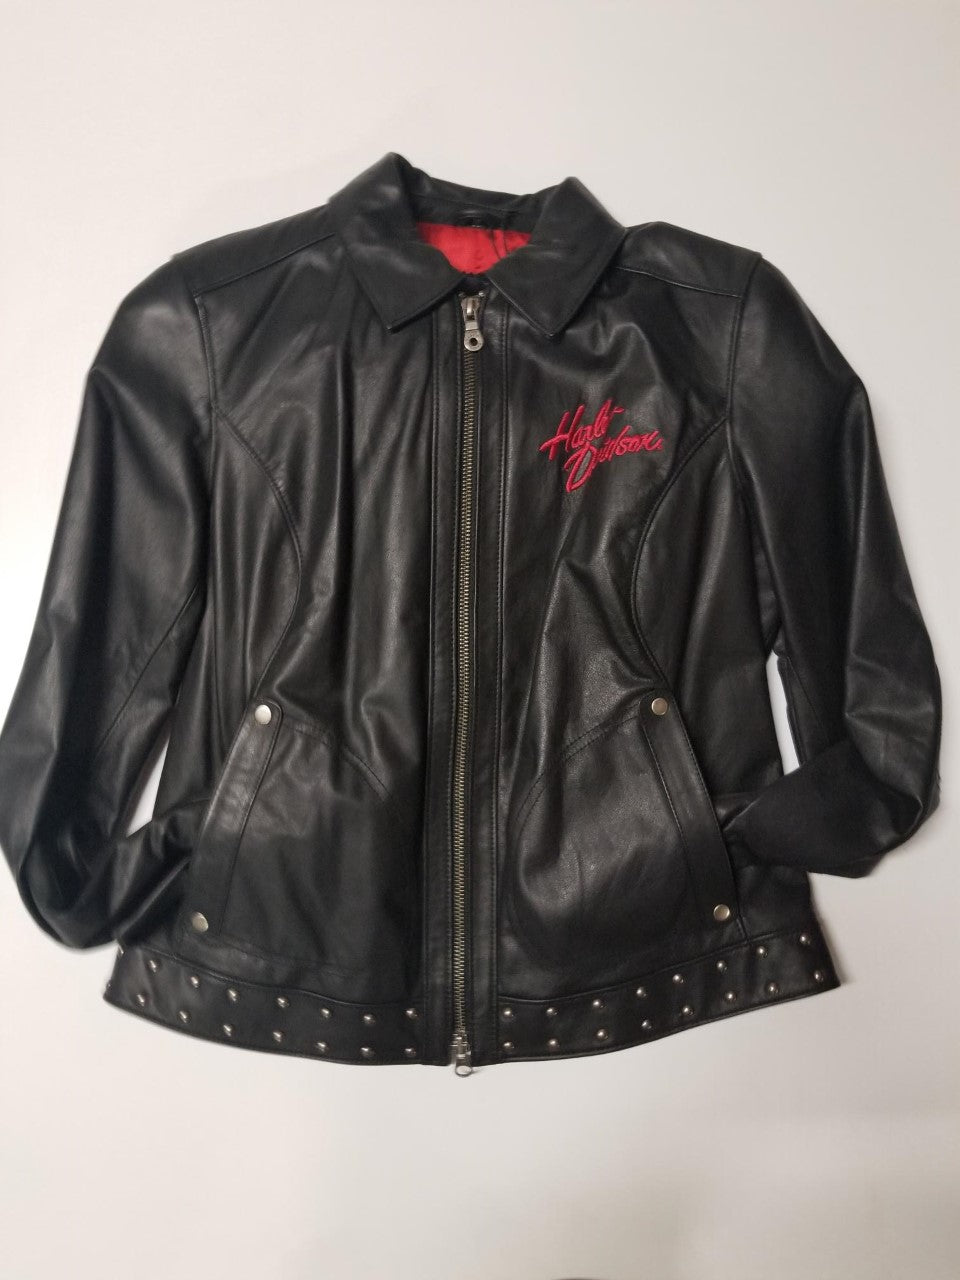 Harley-Davidson harmony leather jacket